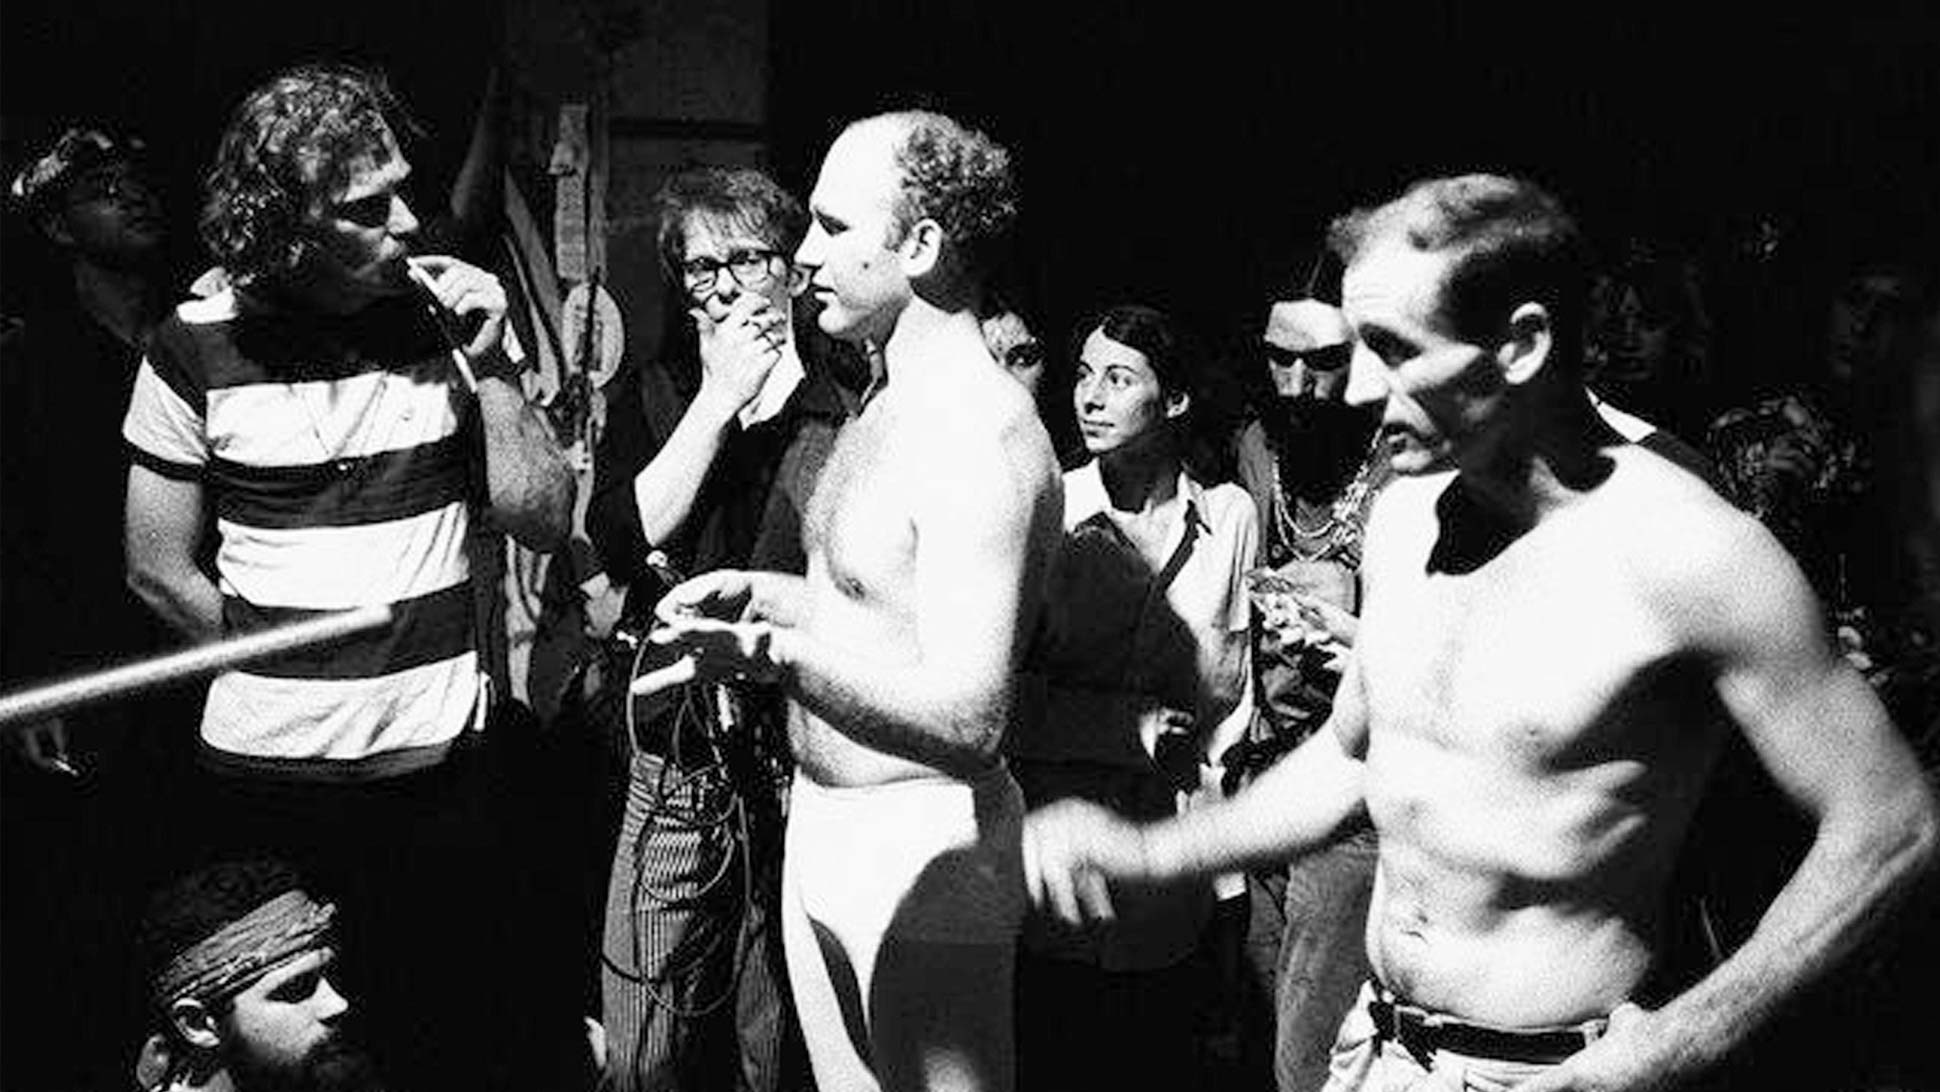 Ken Kesey and Neal Cassady bare their chests during the Merry Pranksters' Acid Test Graduation. Photo by Ted Streshinsky, Corbis